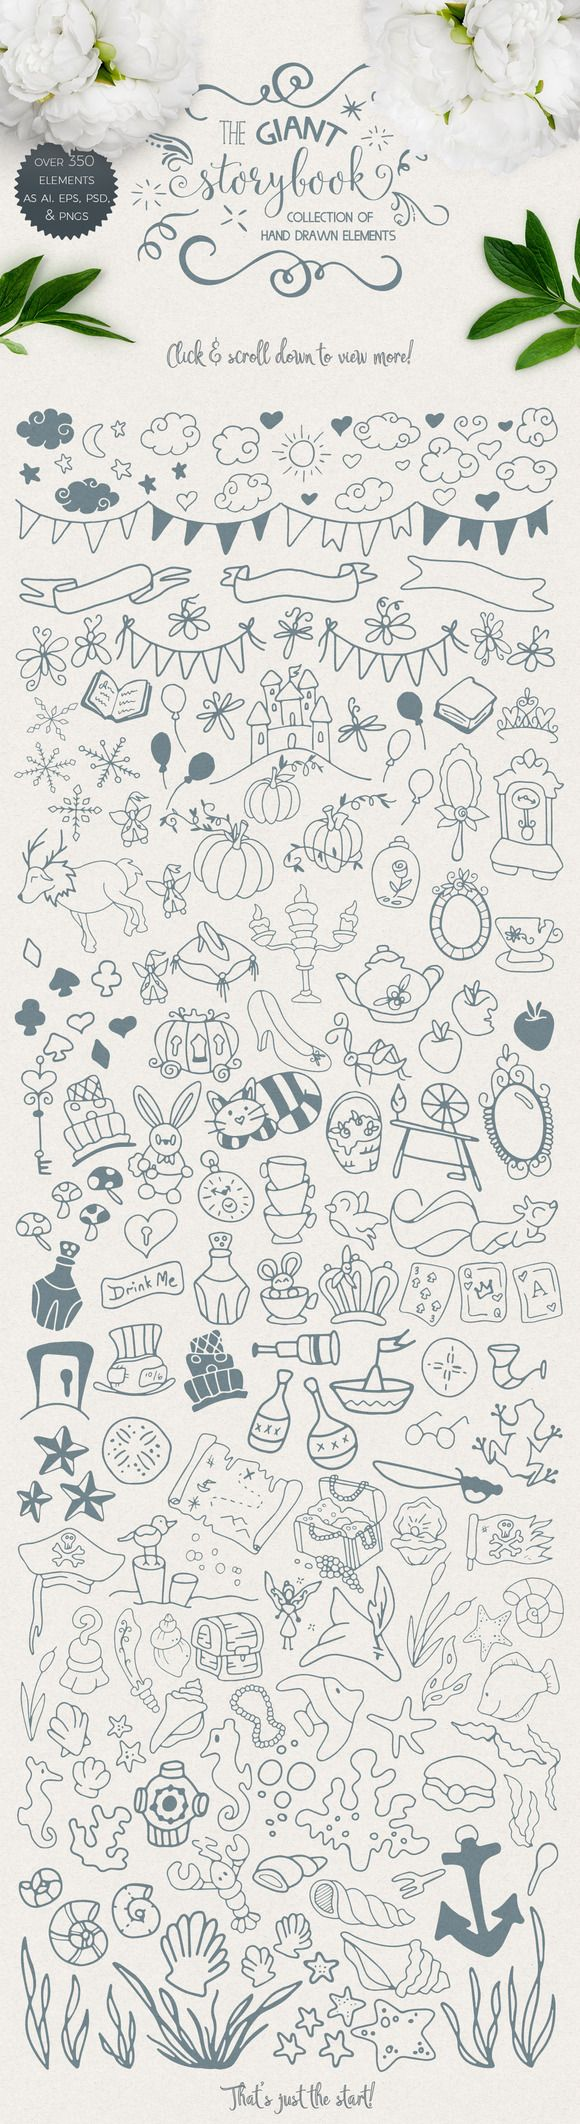 Giant Storybook Elements Collection by Kaerie Out Creative on @creativemarket